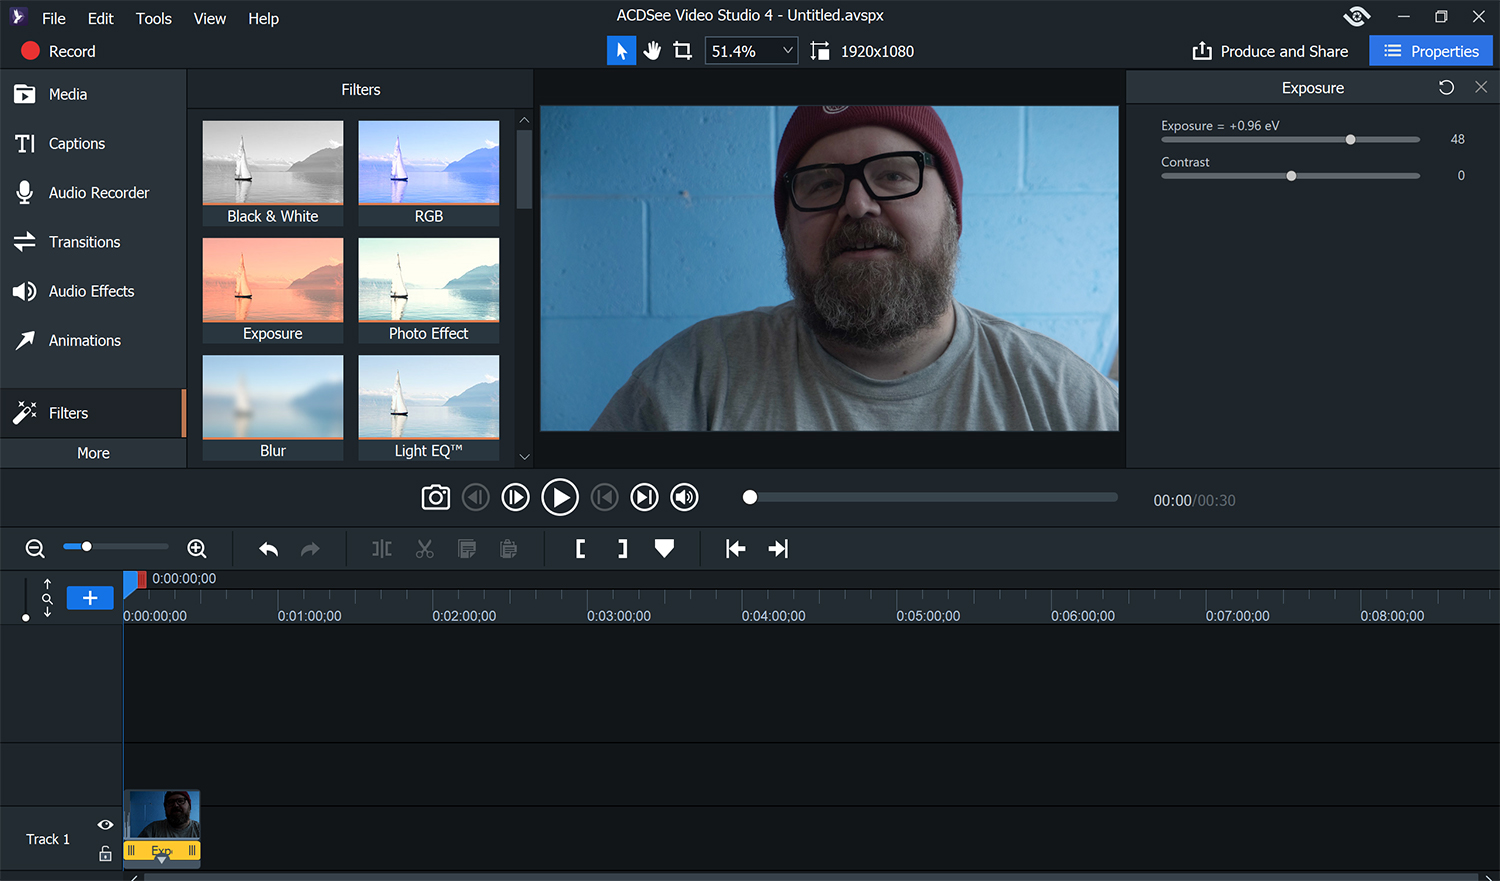 Image: Video Studio 4 is great for editing short clips for social media or uploading to YouTube. It...